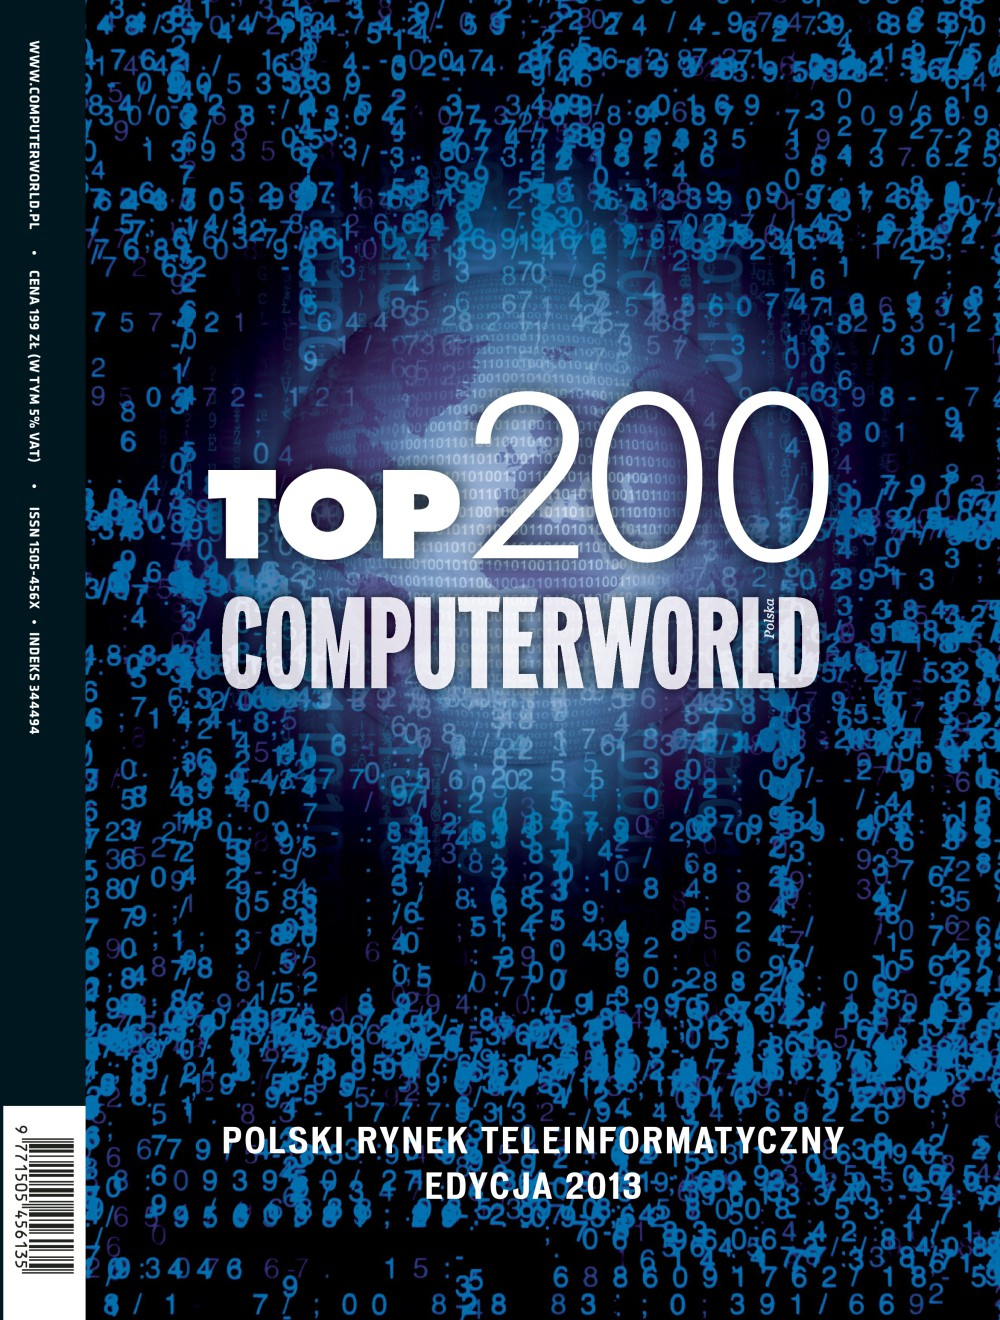 Raport Computerworld TOP 200 - e-wydanie